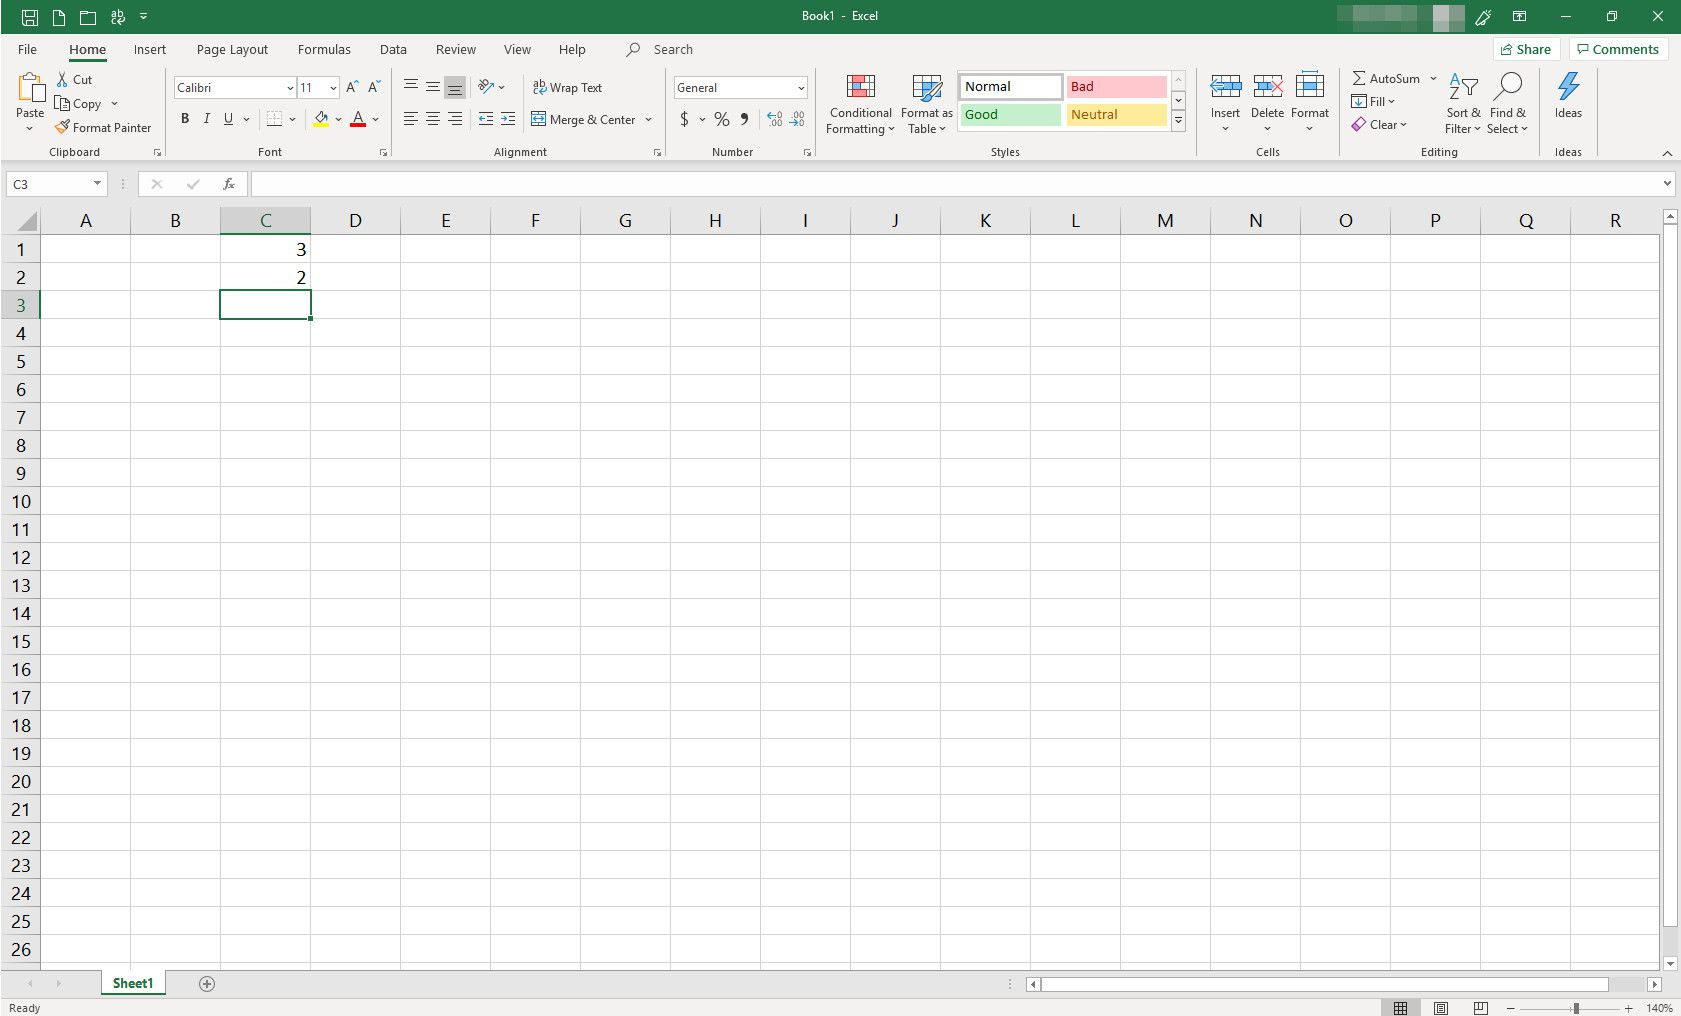 MS Excel spreadsheet with two cells populated with data